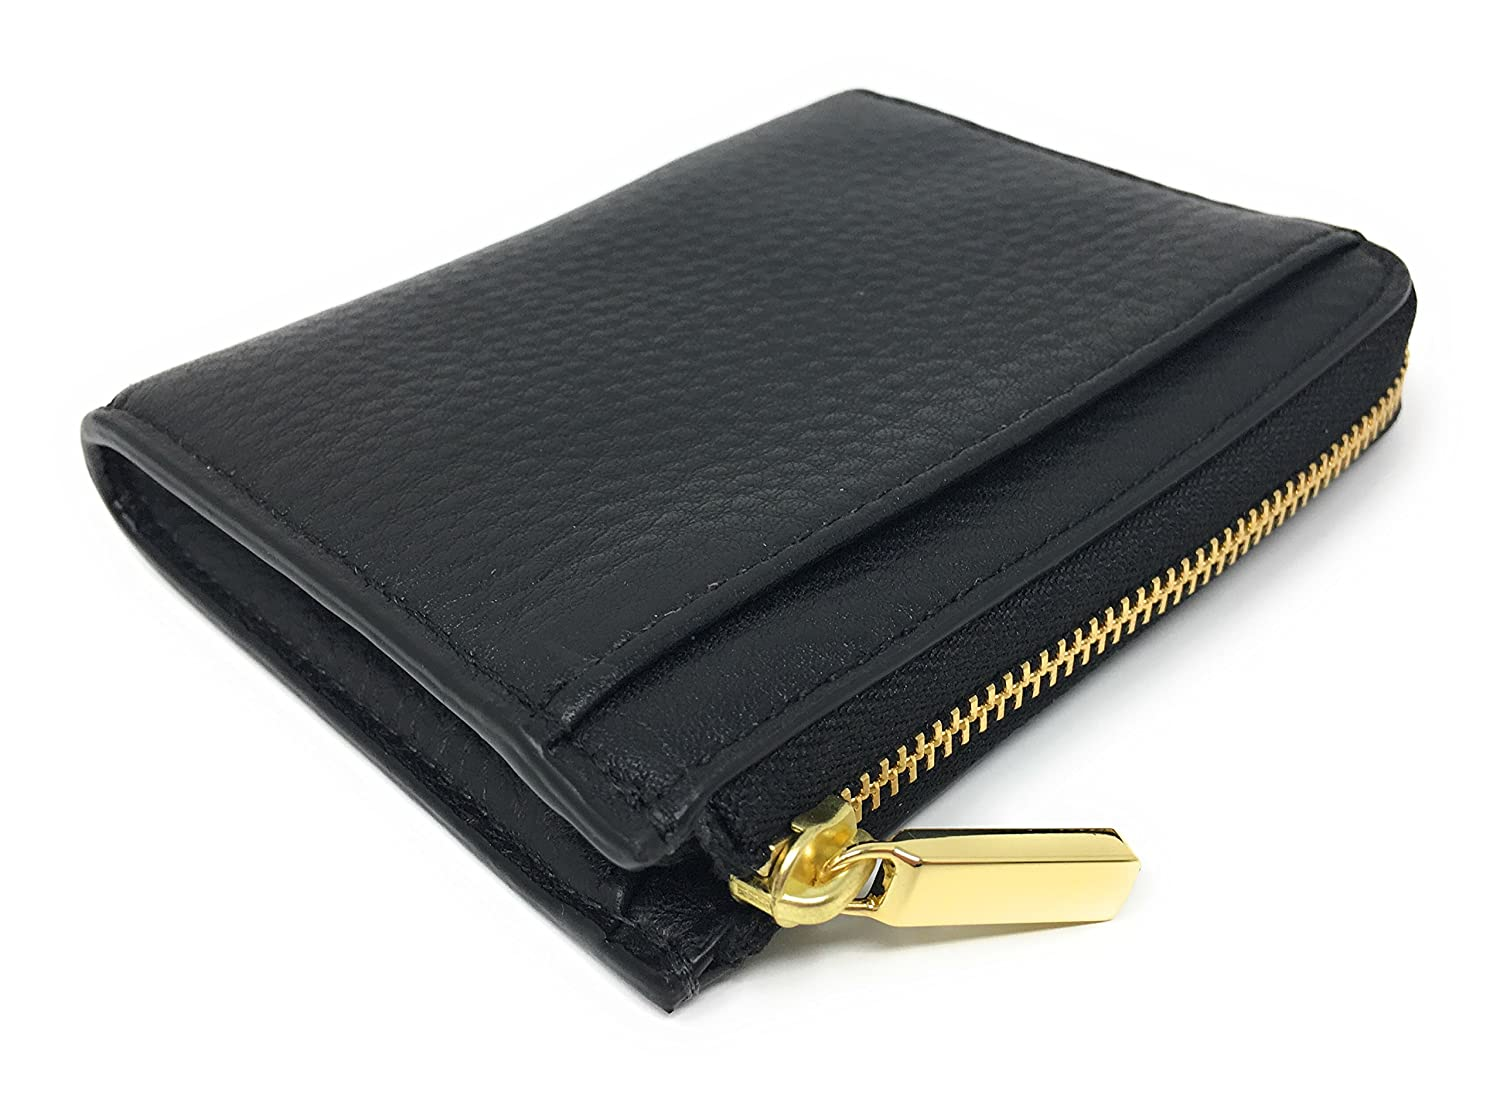 Tory Burch Mercer Half Zip Leather Card Case (Black) at Amazon Women's  Clothing store: